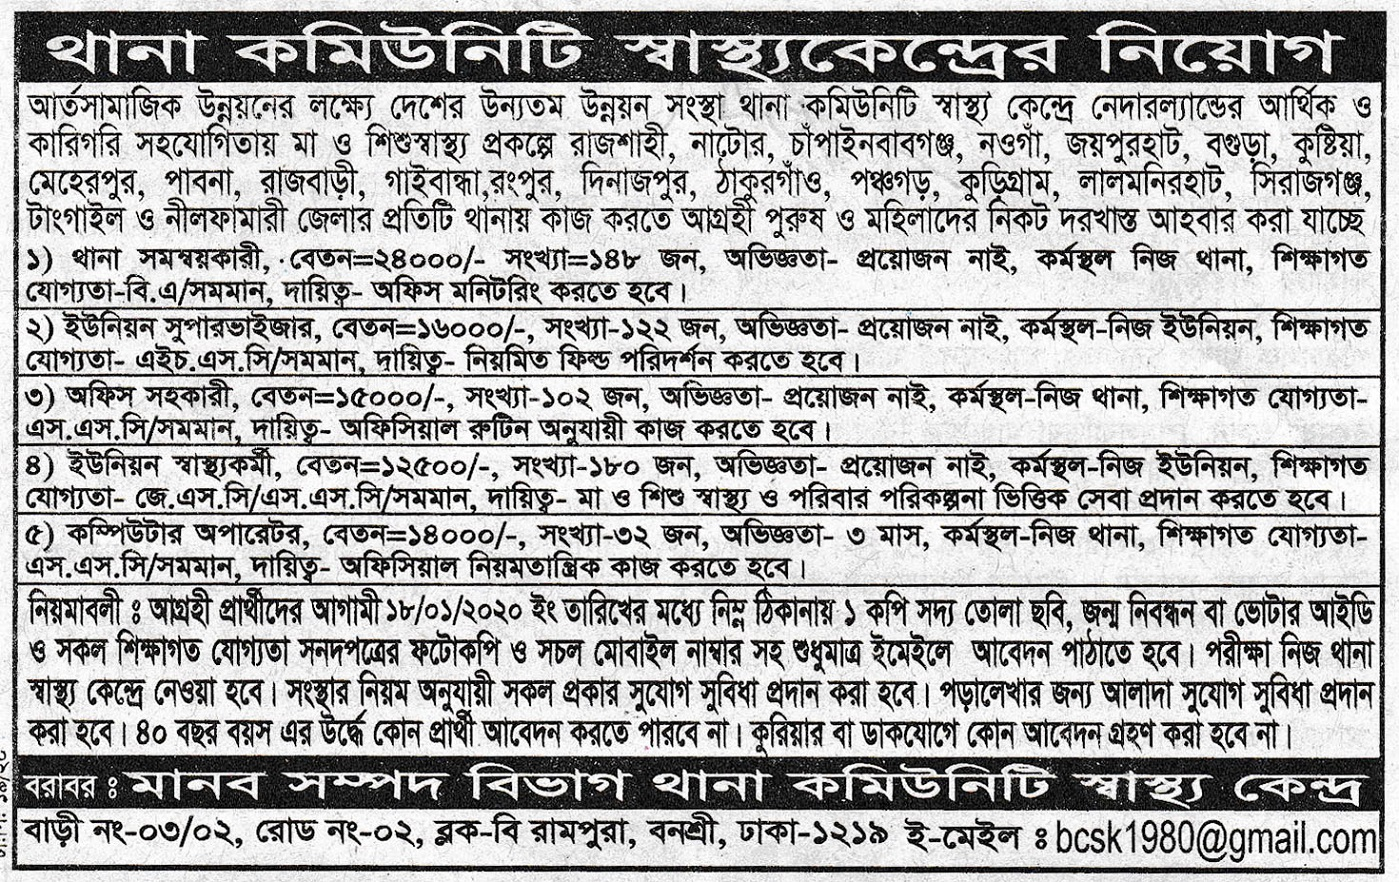 Bangladesh Community Health Center Job Circular 2020